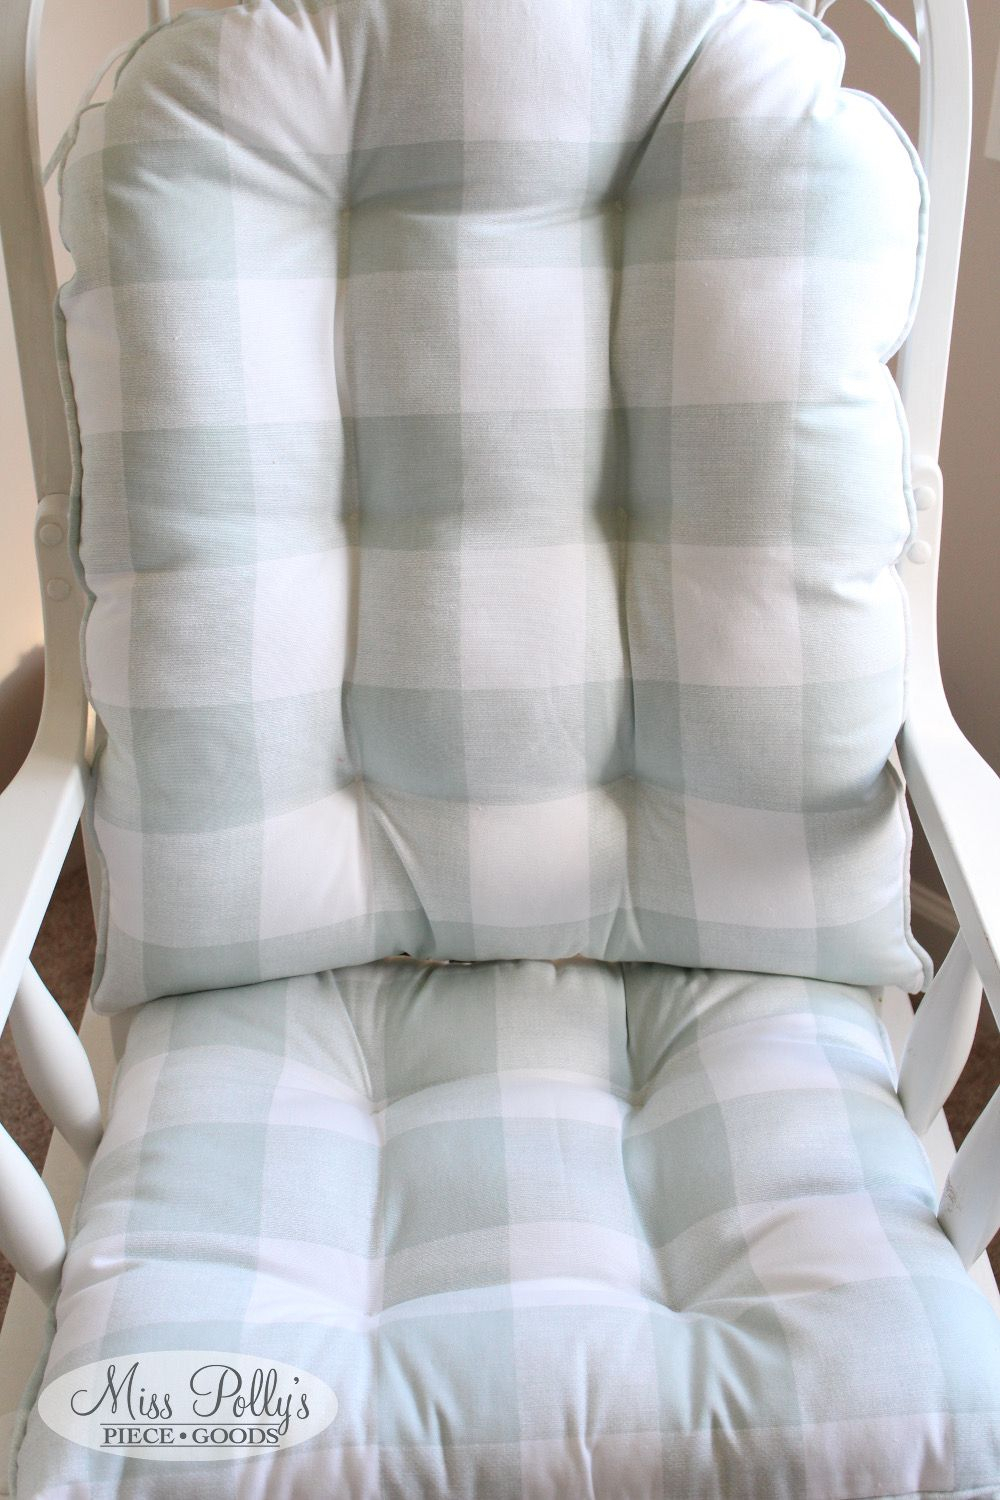 Glider Cushions - Rocker Cushions - Chair Cushions - Glider inside Katrina Grey Swivel Glider Chairs